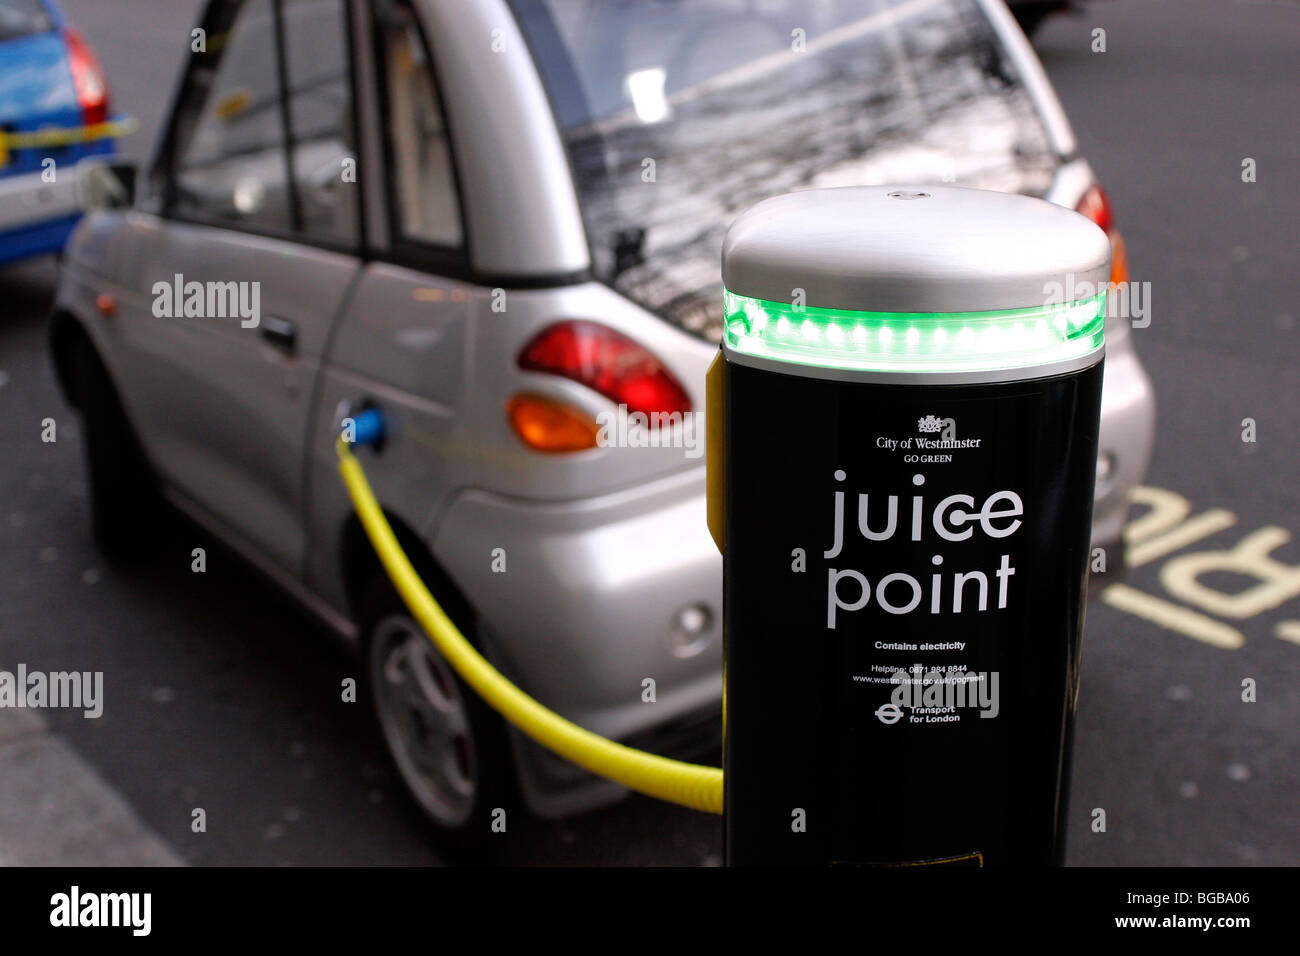 England, London, Westminster, Electric Car Juice Point where electric vehicles charge their batteries - Stock Image